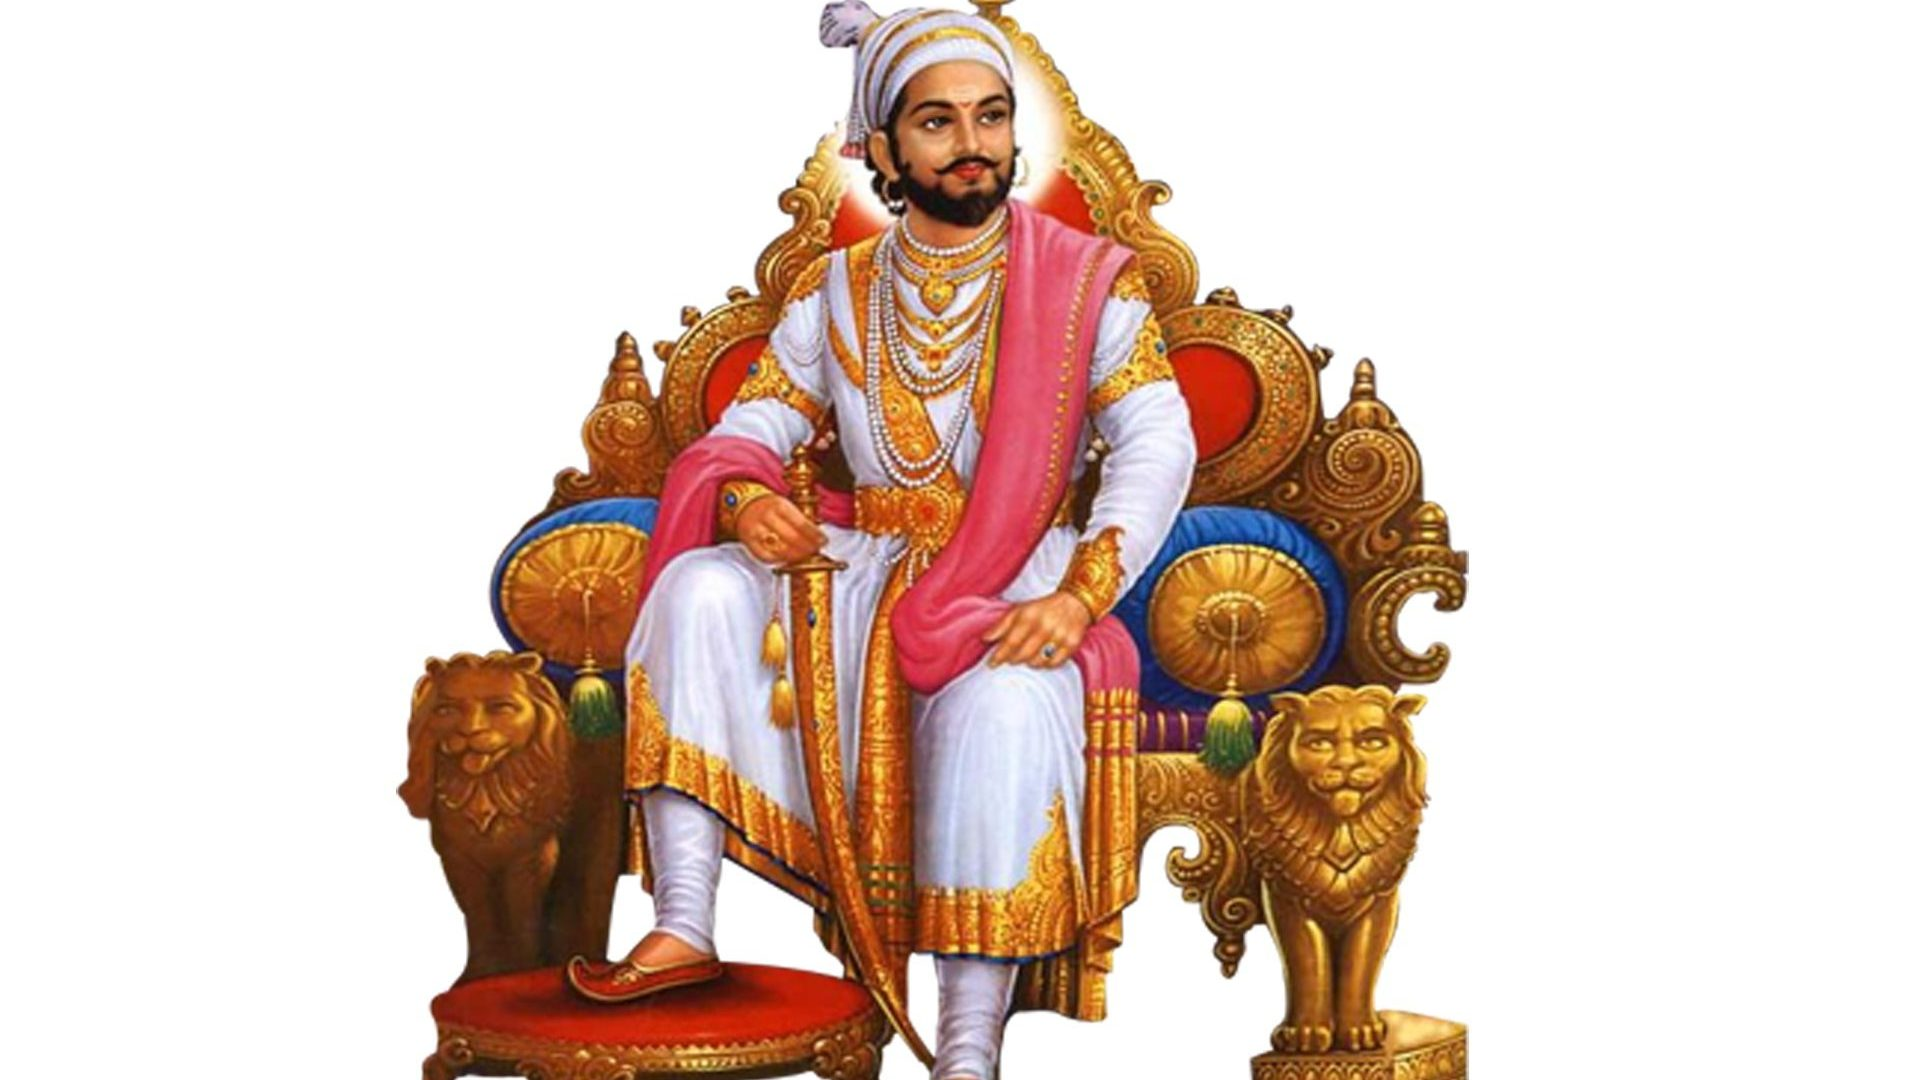 Shivaji 3d Wallpapers Shivaji Maharaj Wallpapers For Desktop Hd Wallpapers